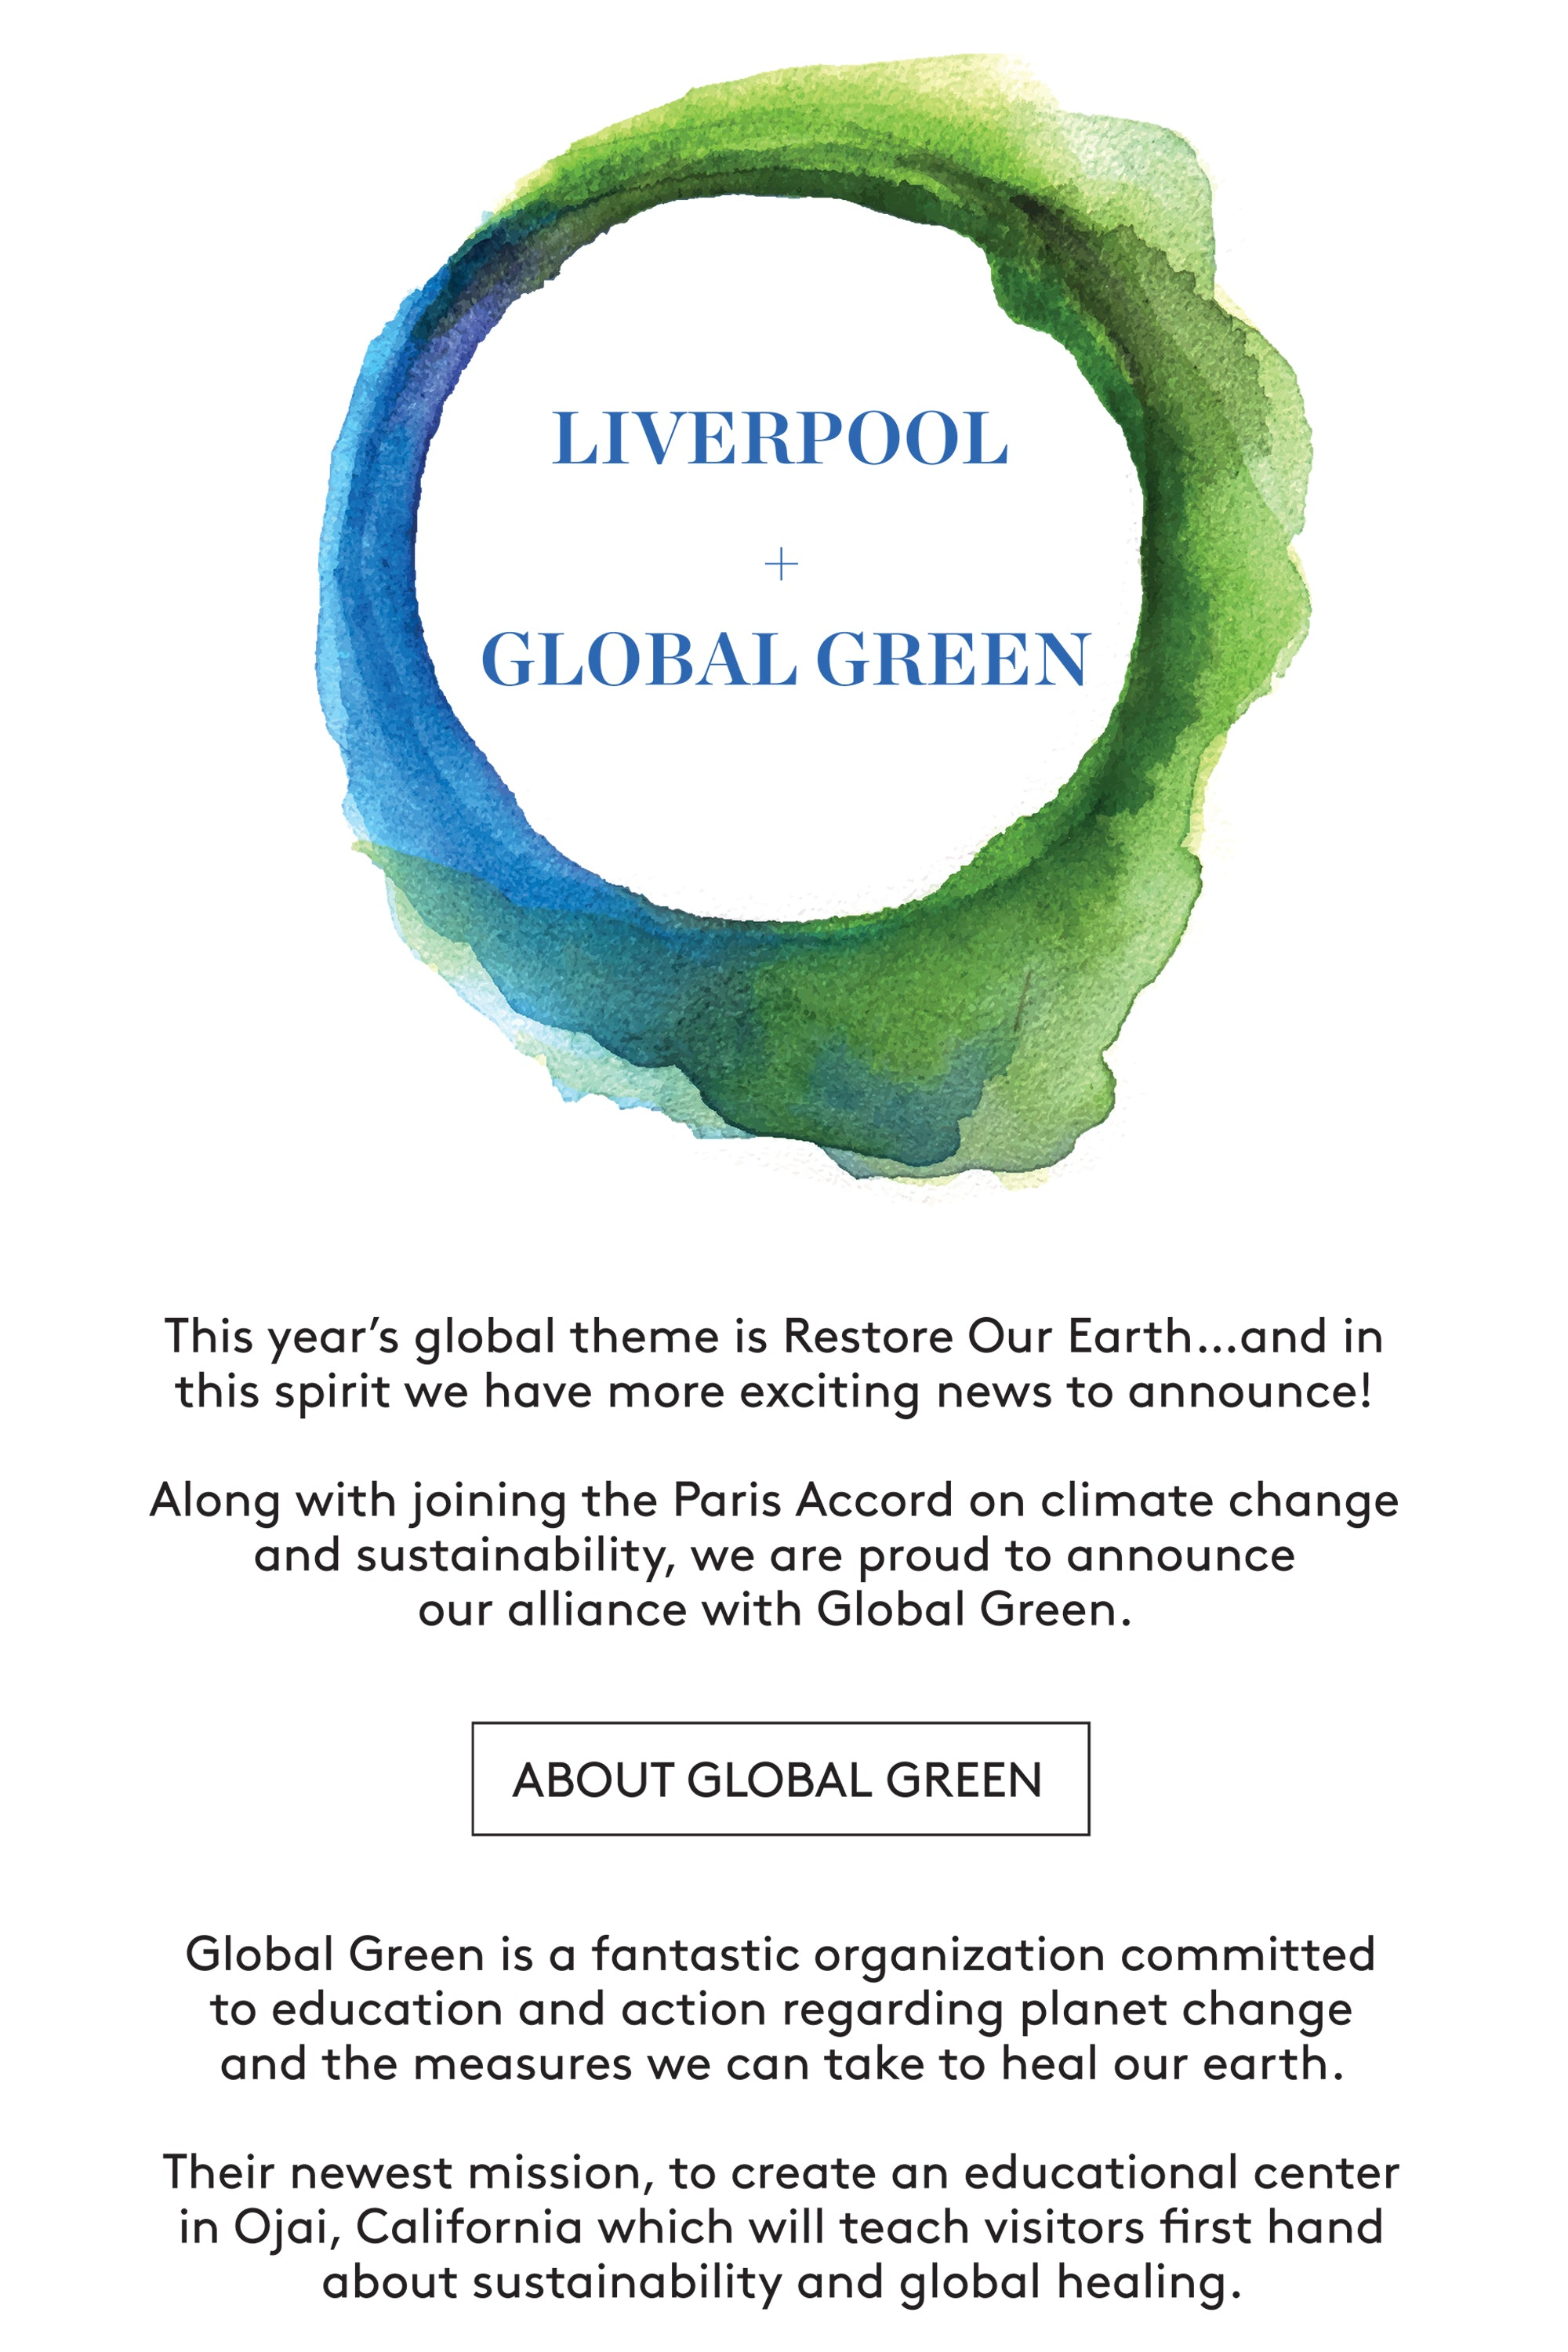 This year's global theme is Restore Our Earth…and in this spirit we have more exciting news to announce! Along with joining the Paris Accord on climate change and sustainability, we are proud to announce our alliance with Global Green. GLOBAL GREEN + LIVERPOOL Global Green is a fantastic organization committed to education and action regarding planet change and the measures we can take to heal our earth. Their newest mission, to create an educational center in Ojai, California which will teach visitors first hand about sustainability and global healing.